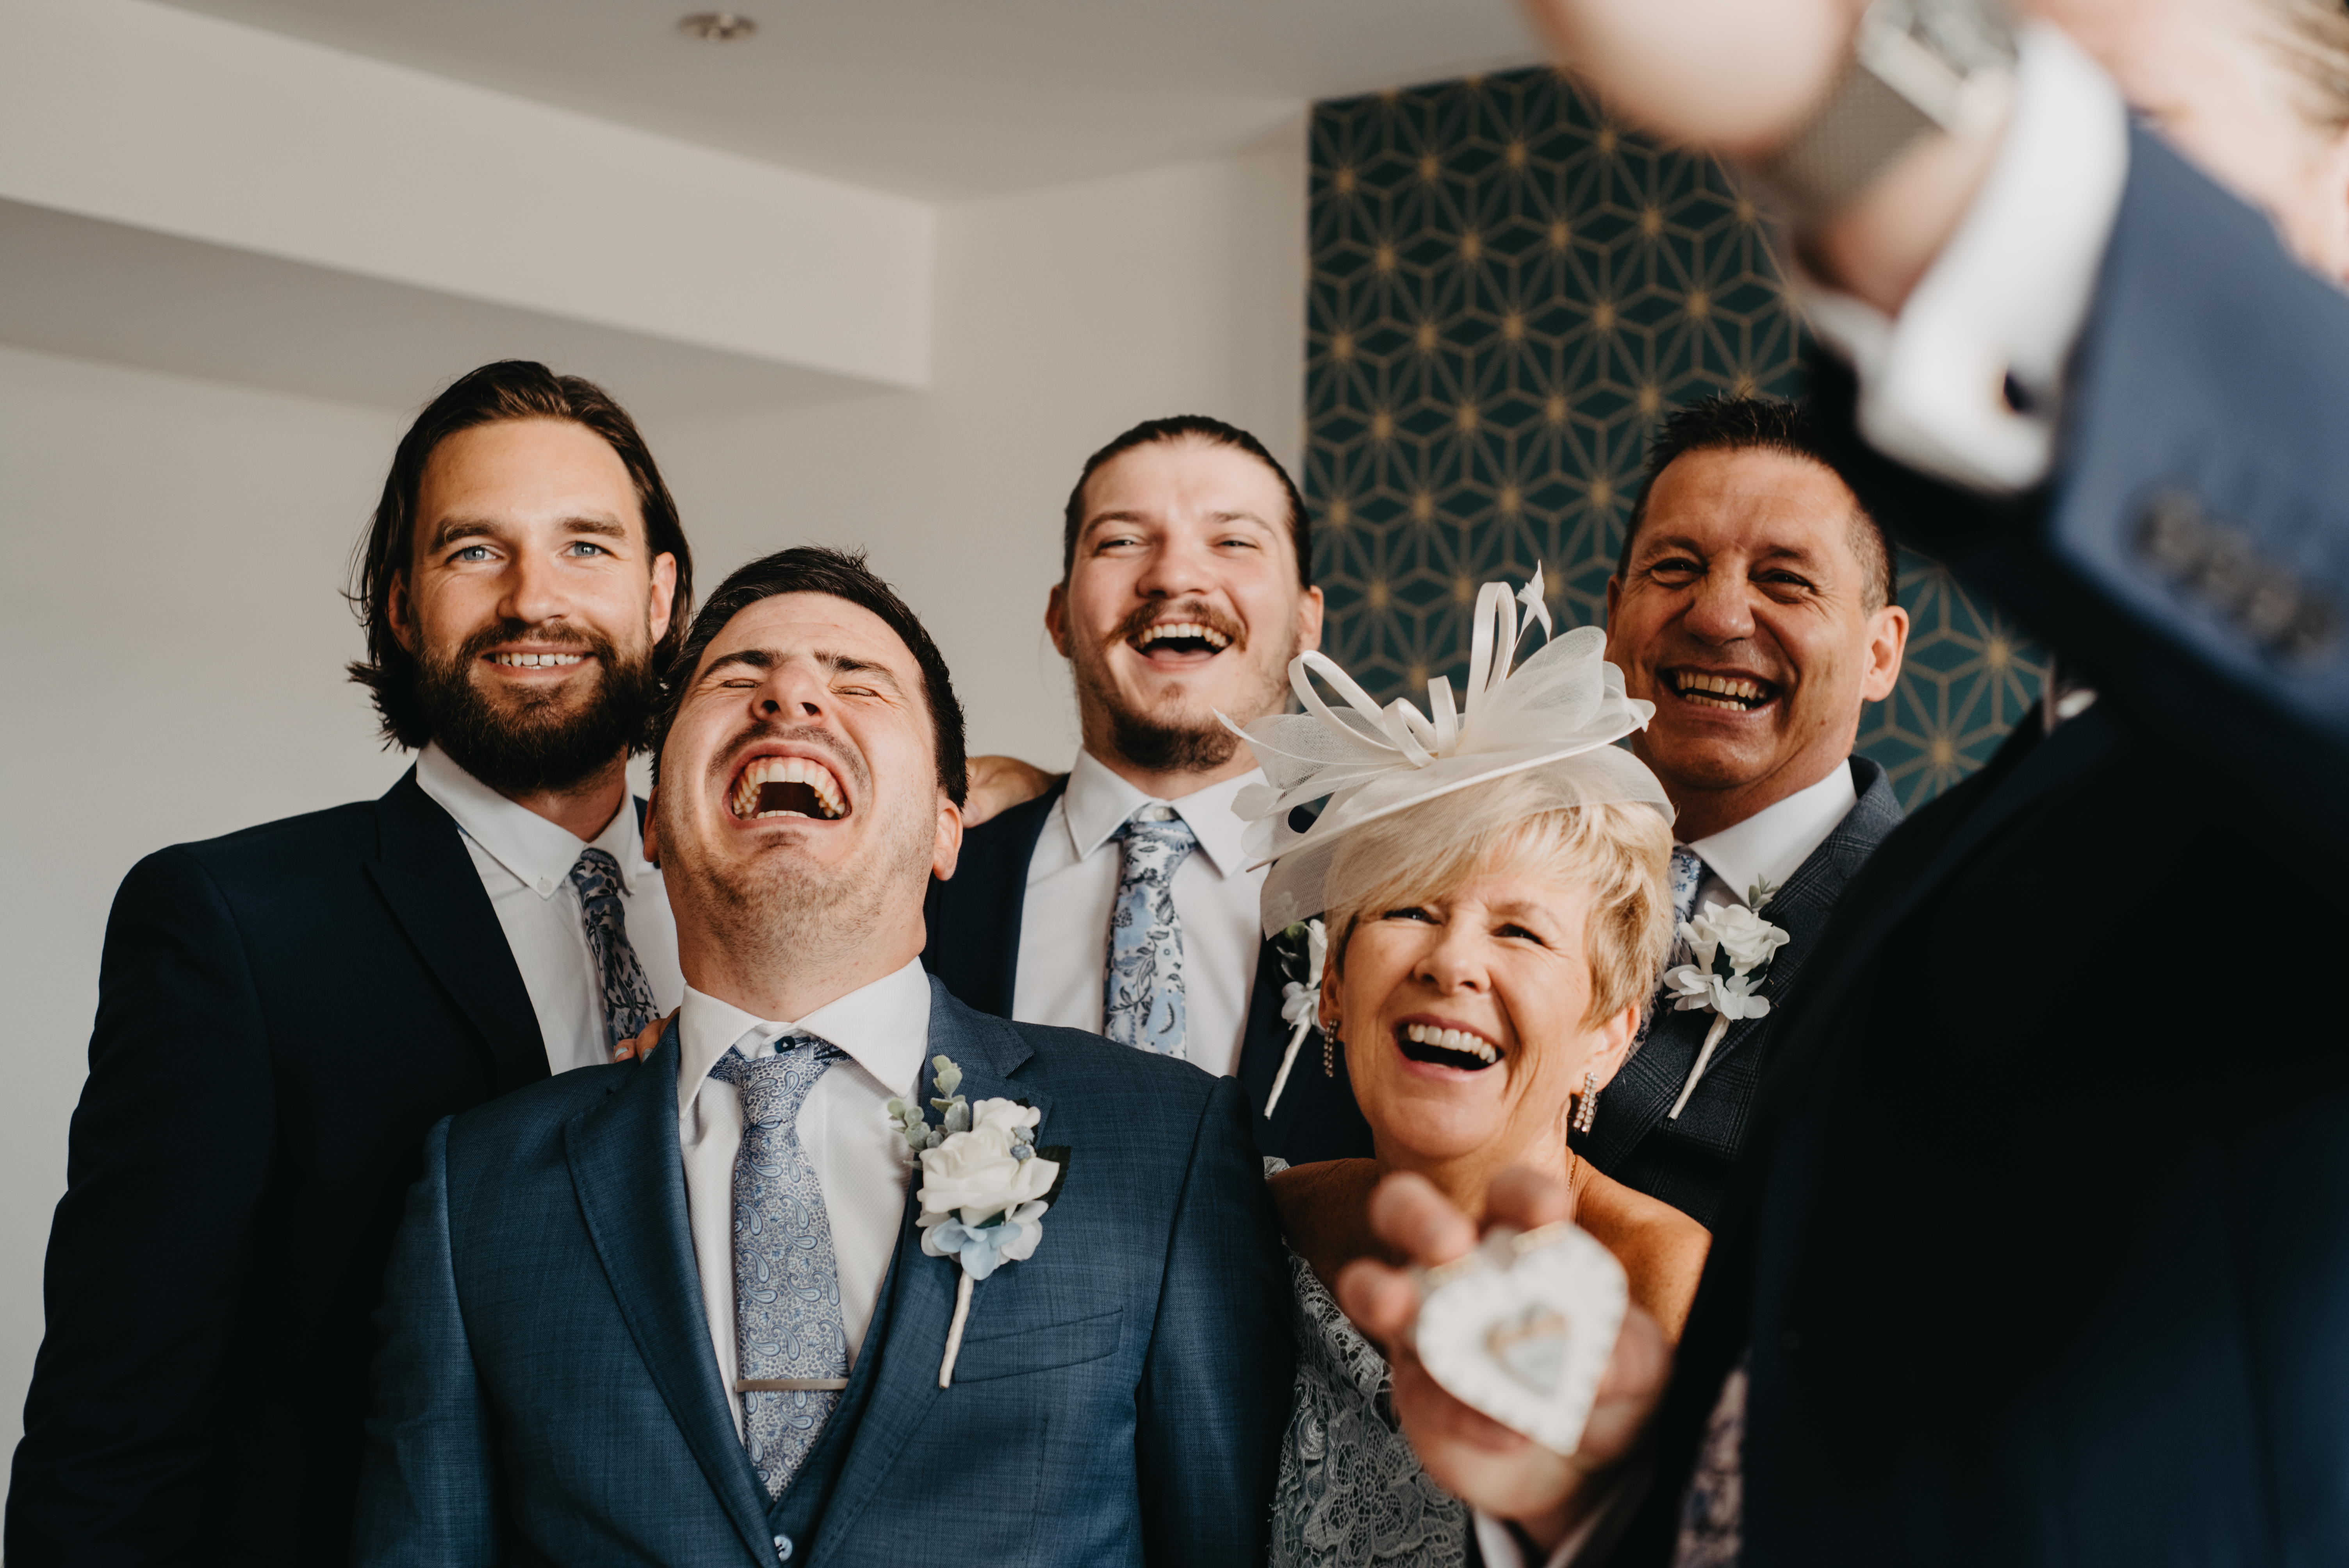 A groom and his groomsmen taking a selfie and laughing